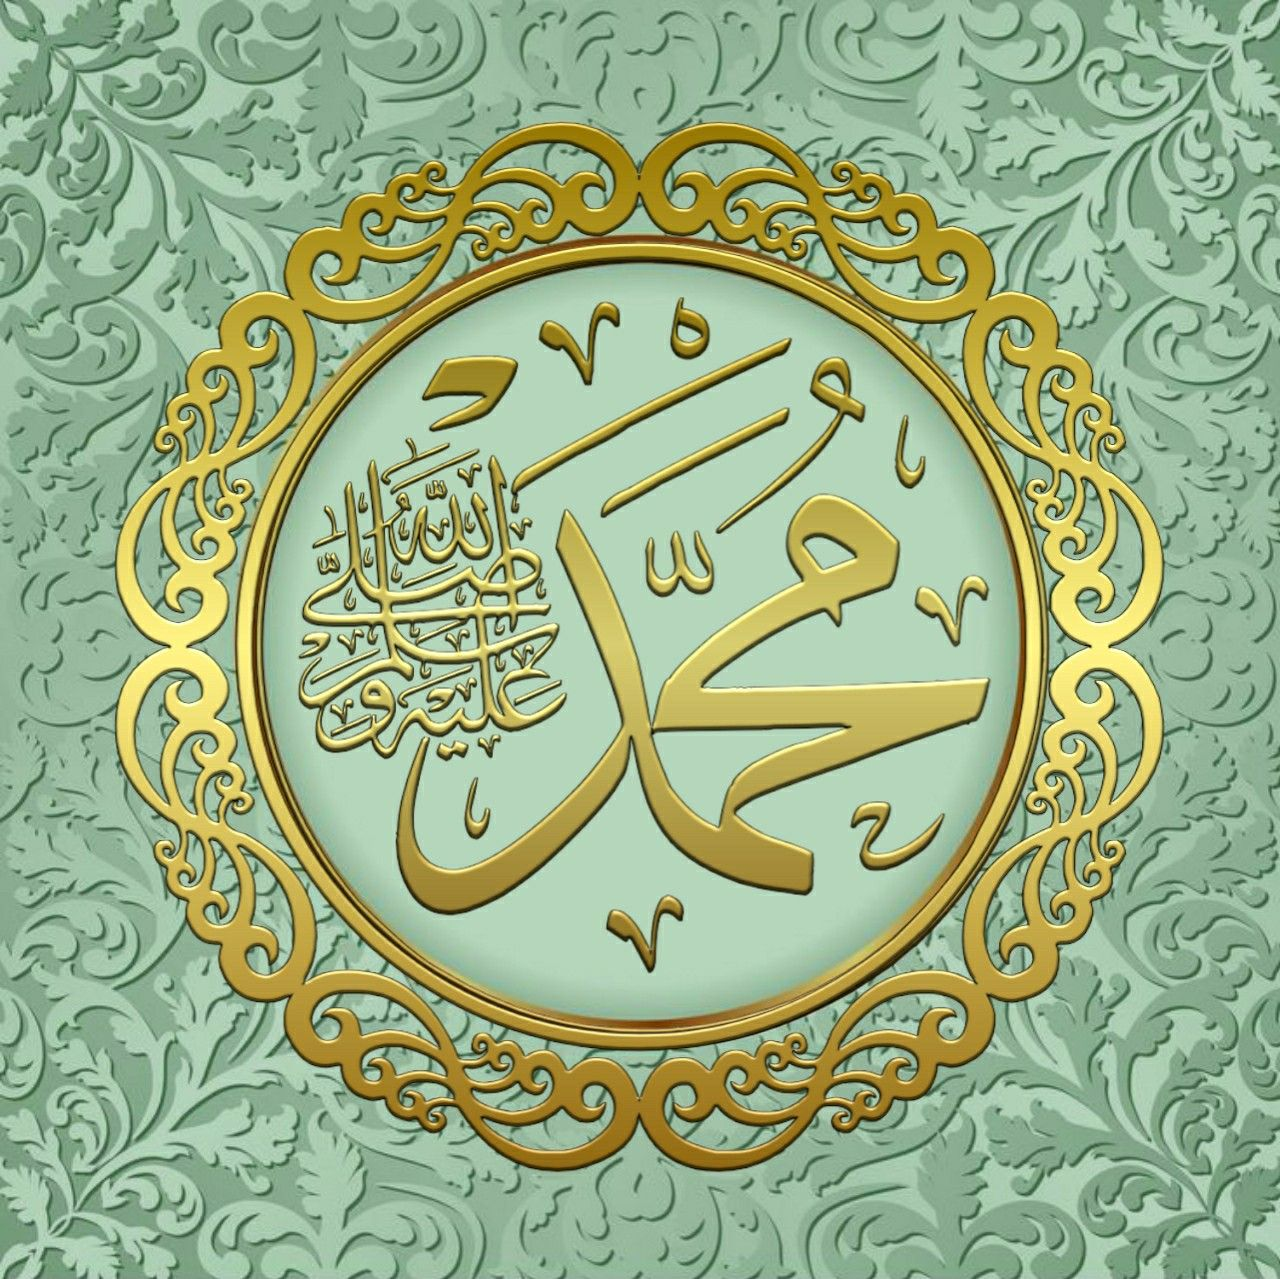 Pin By Feroza Parveen On Allah And Islam Islamic Art Calligraphy Islamic Art Islamic Wallpaper